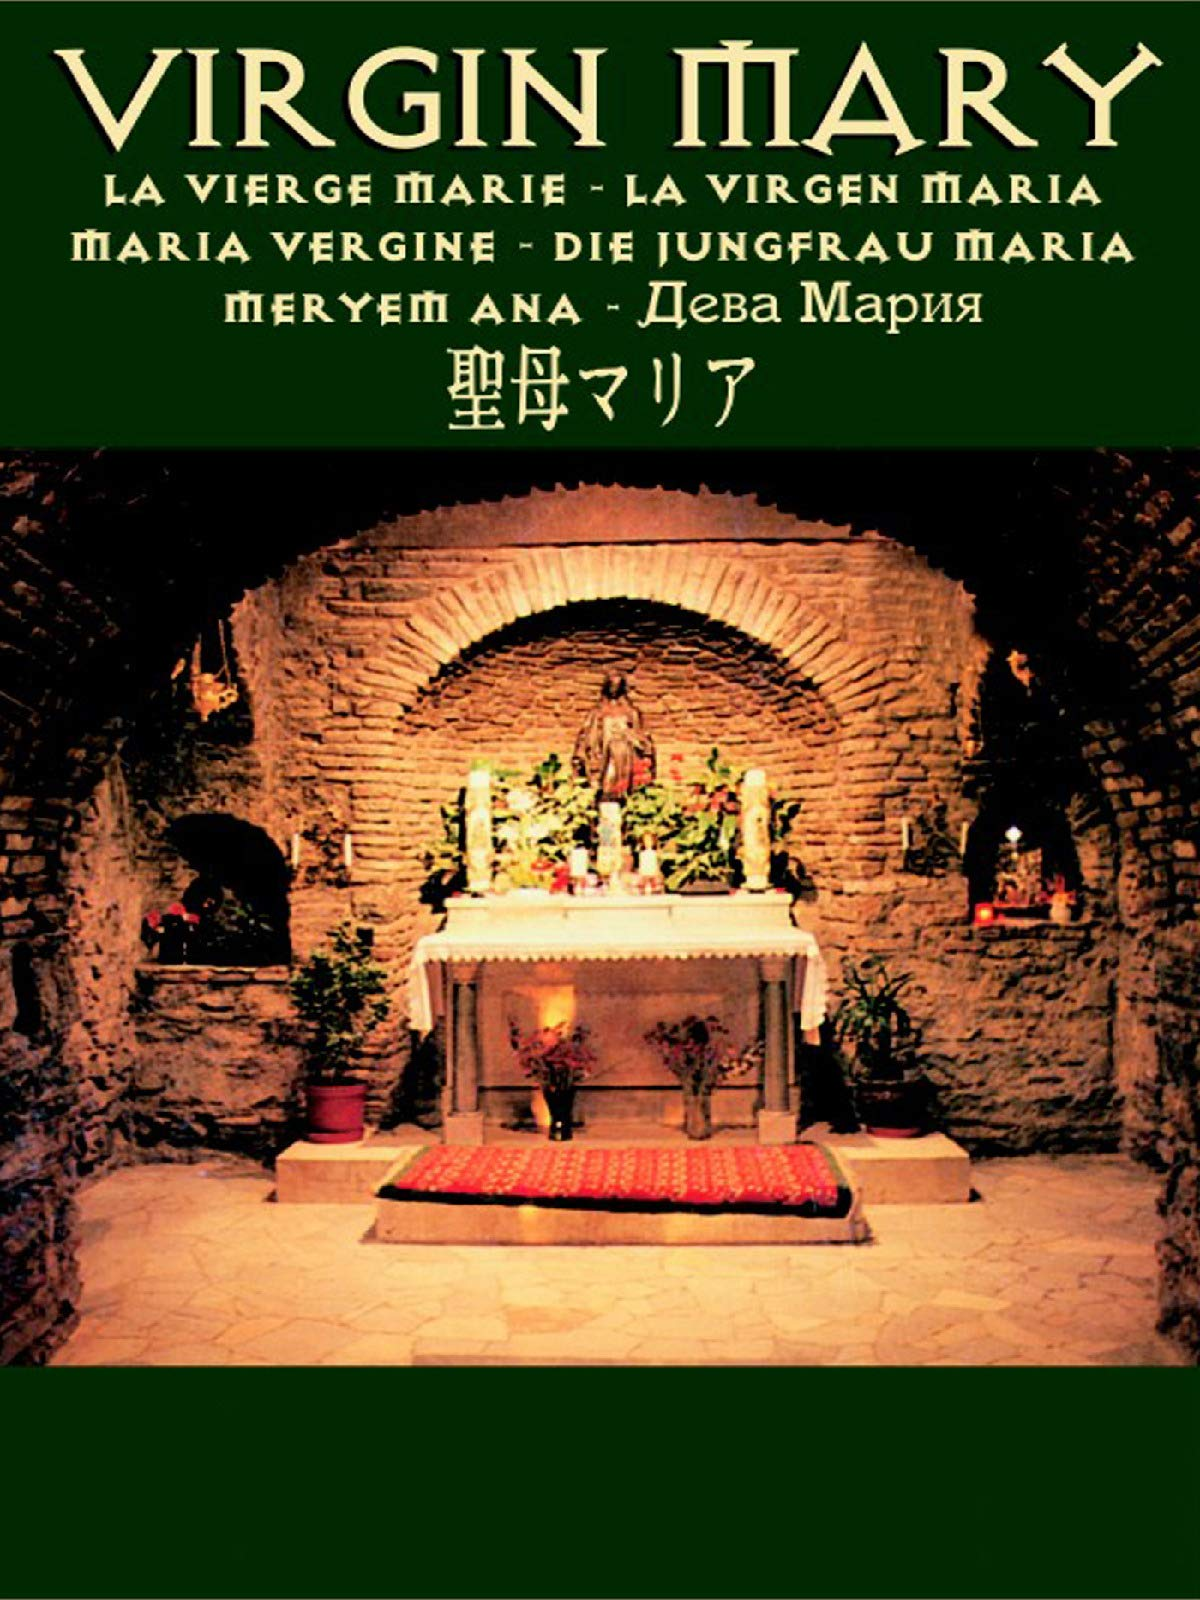 Virgin Mary - The House, Church and Life Story of Virgin Mary Queen of Heaven